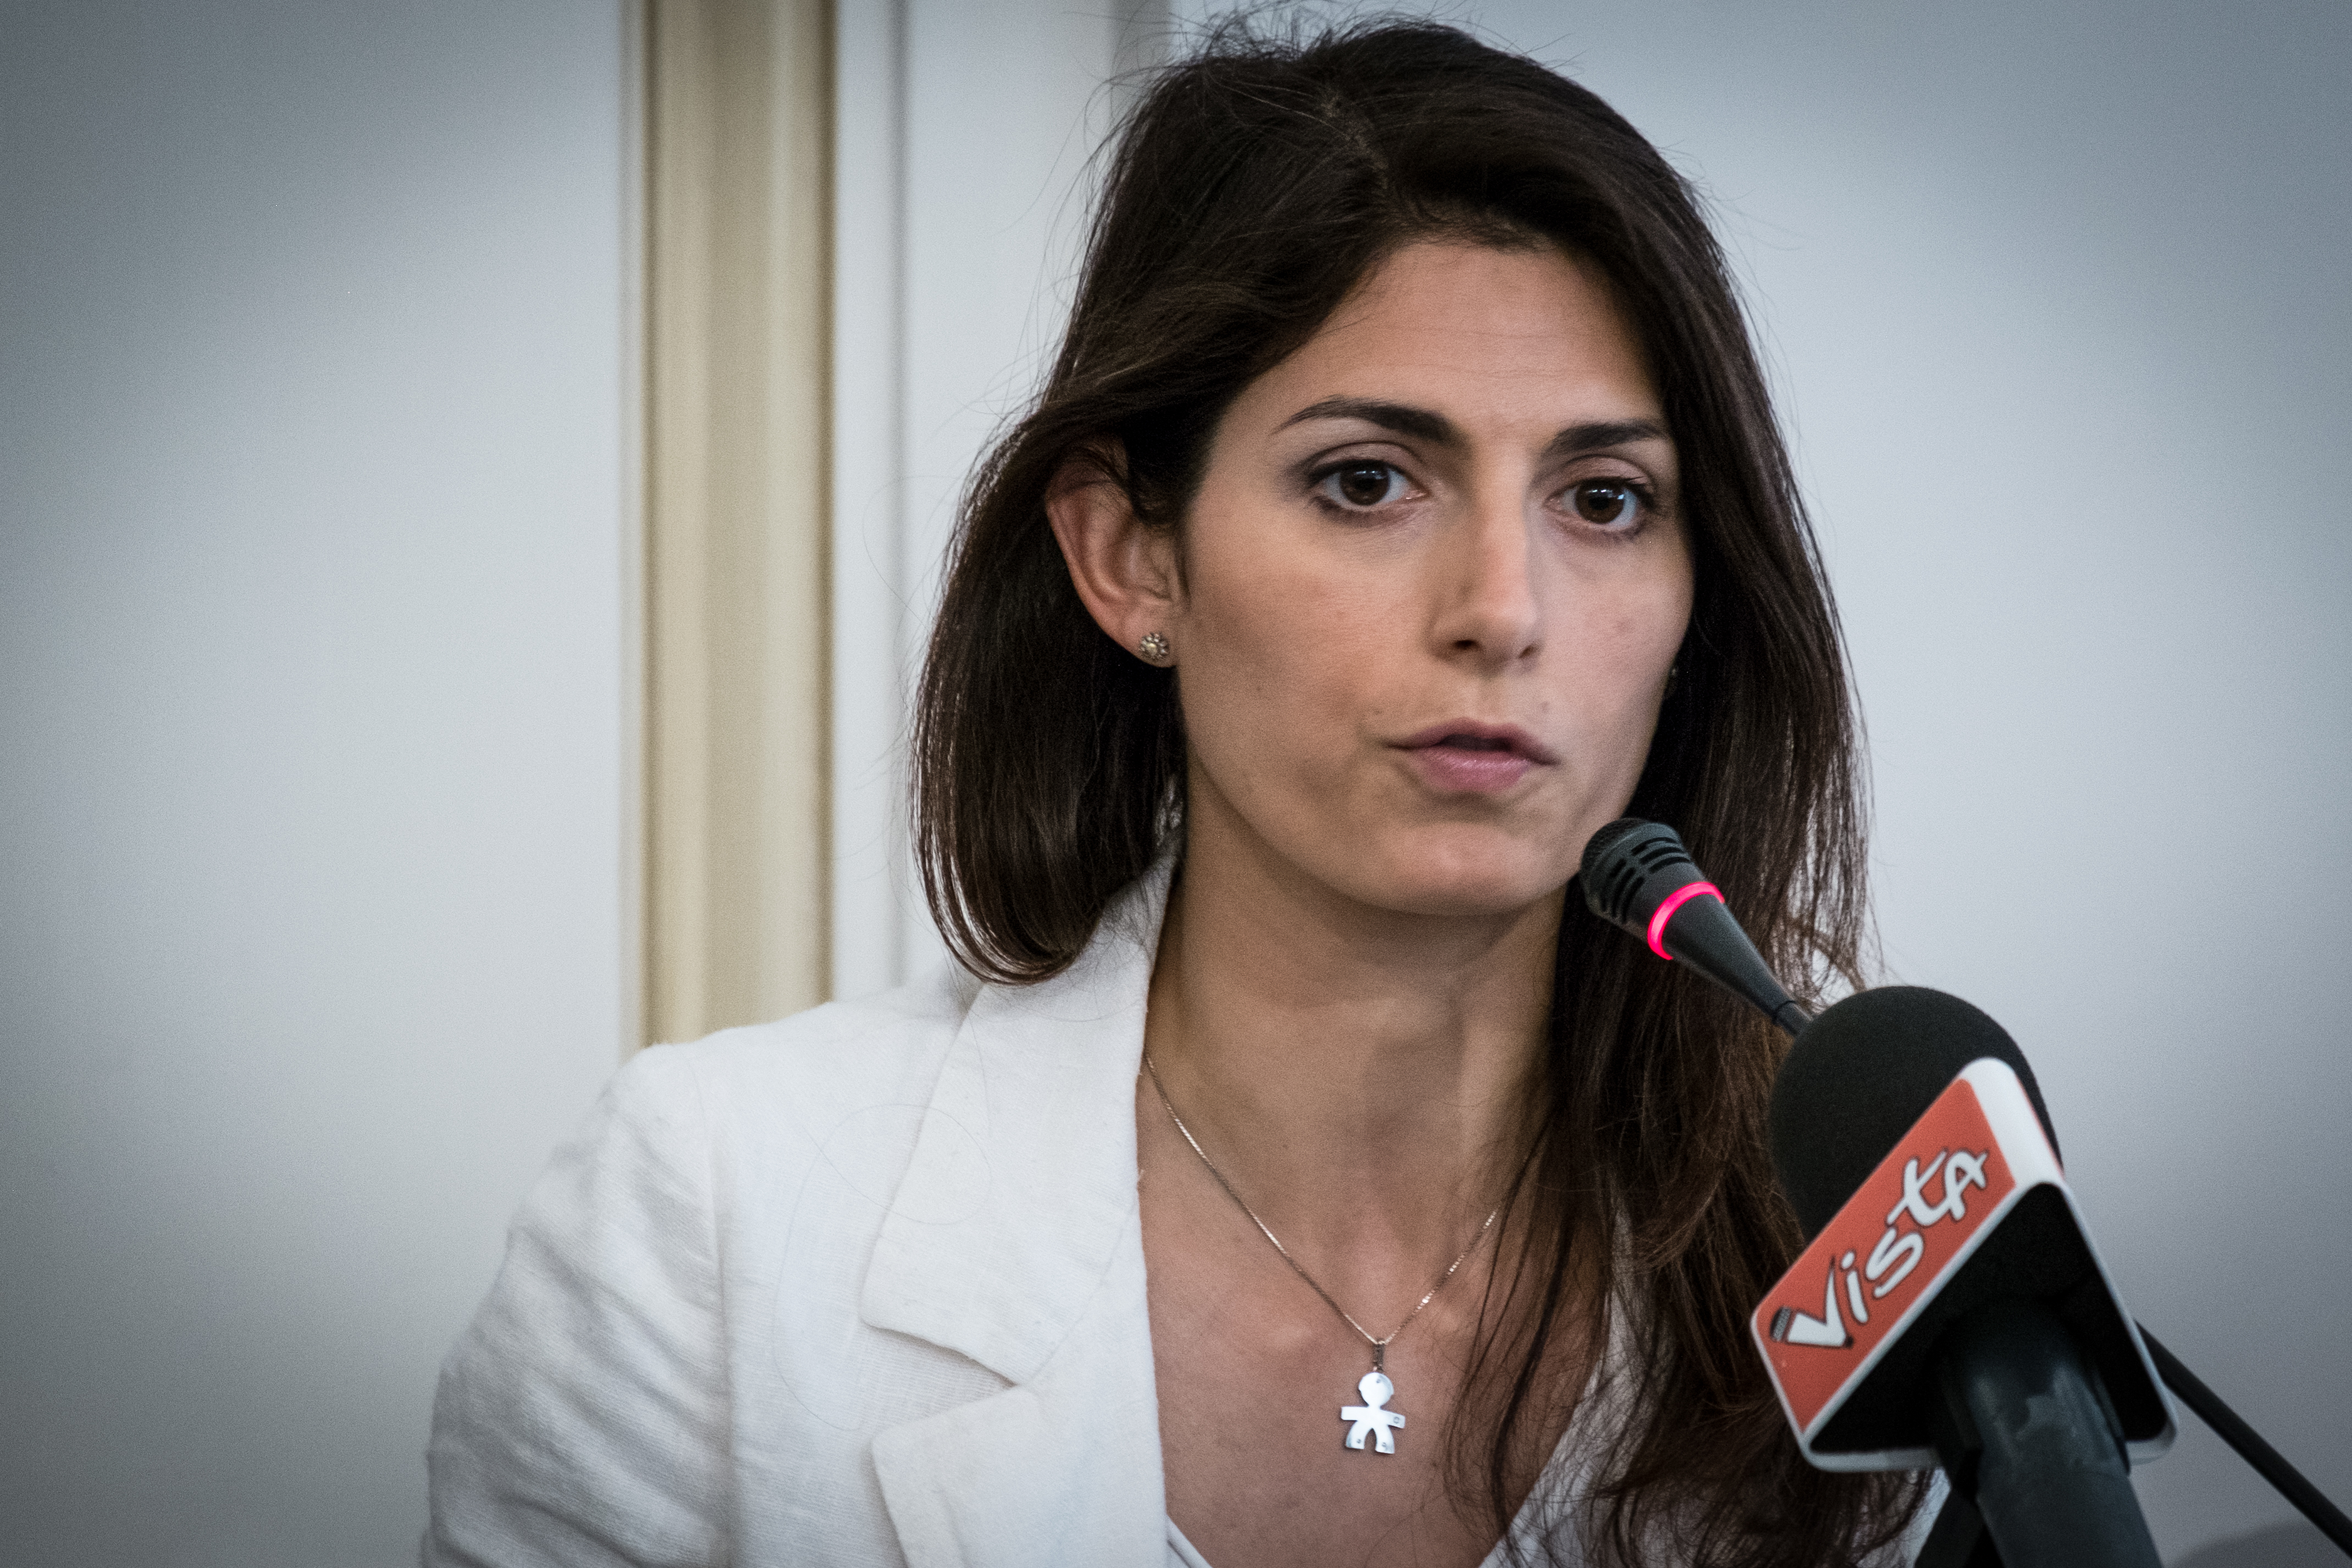 Virginia Raggi, the candidate for mayor of Rome M5S at the